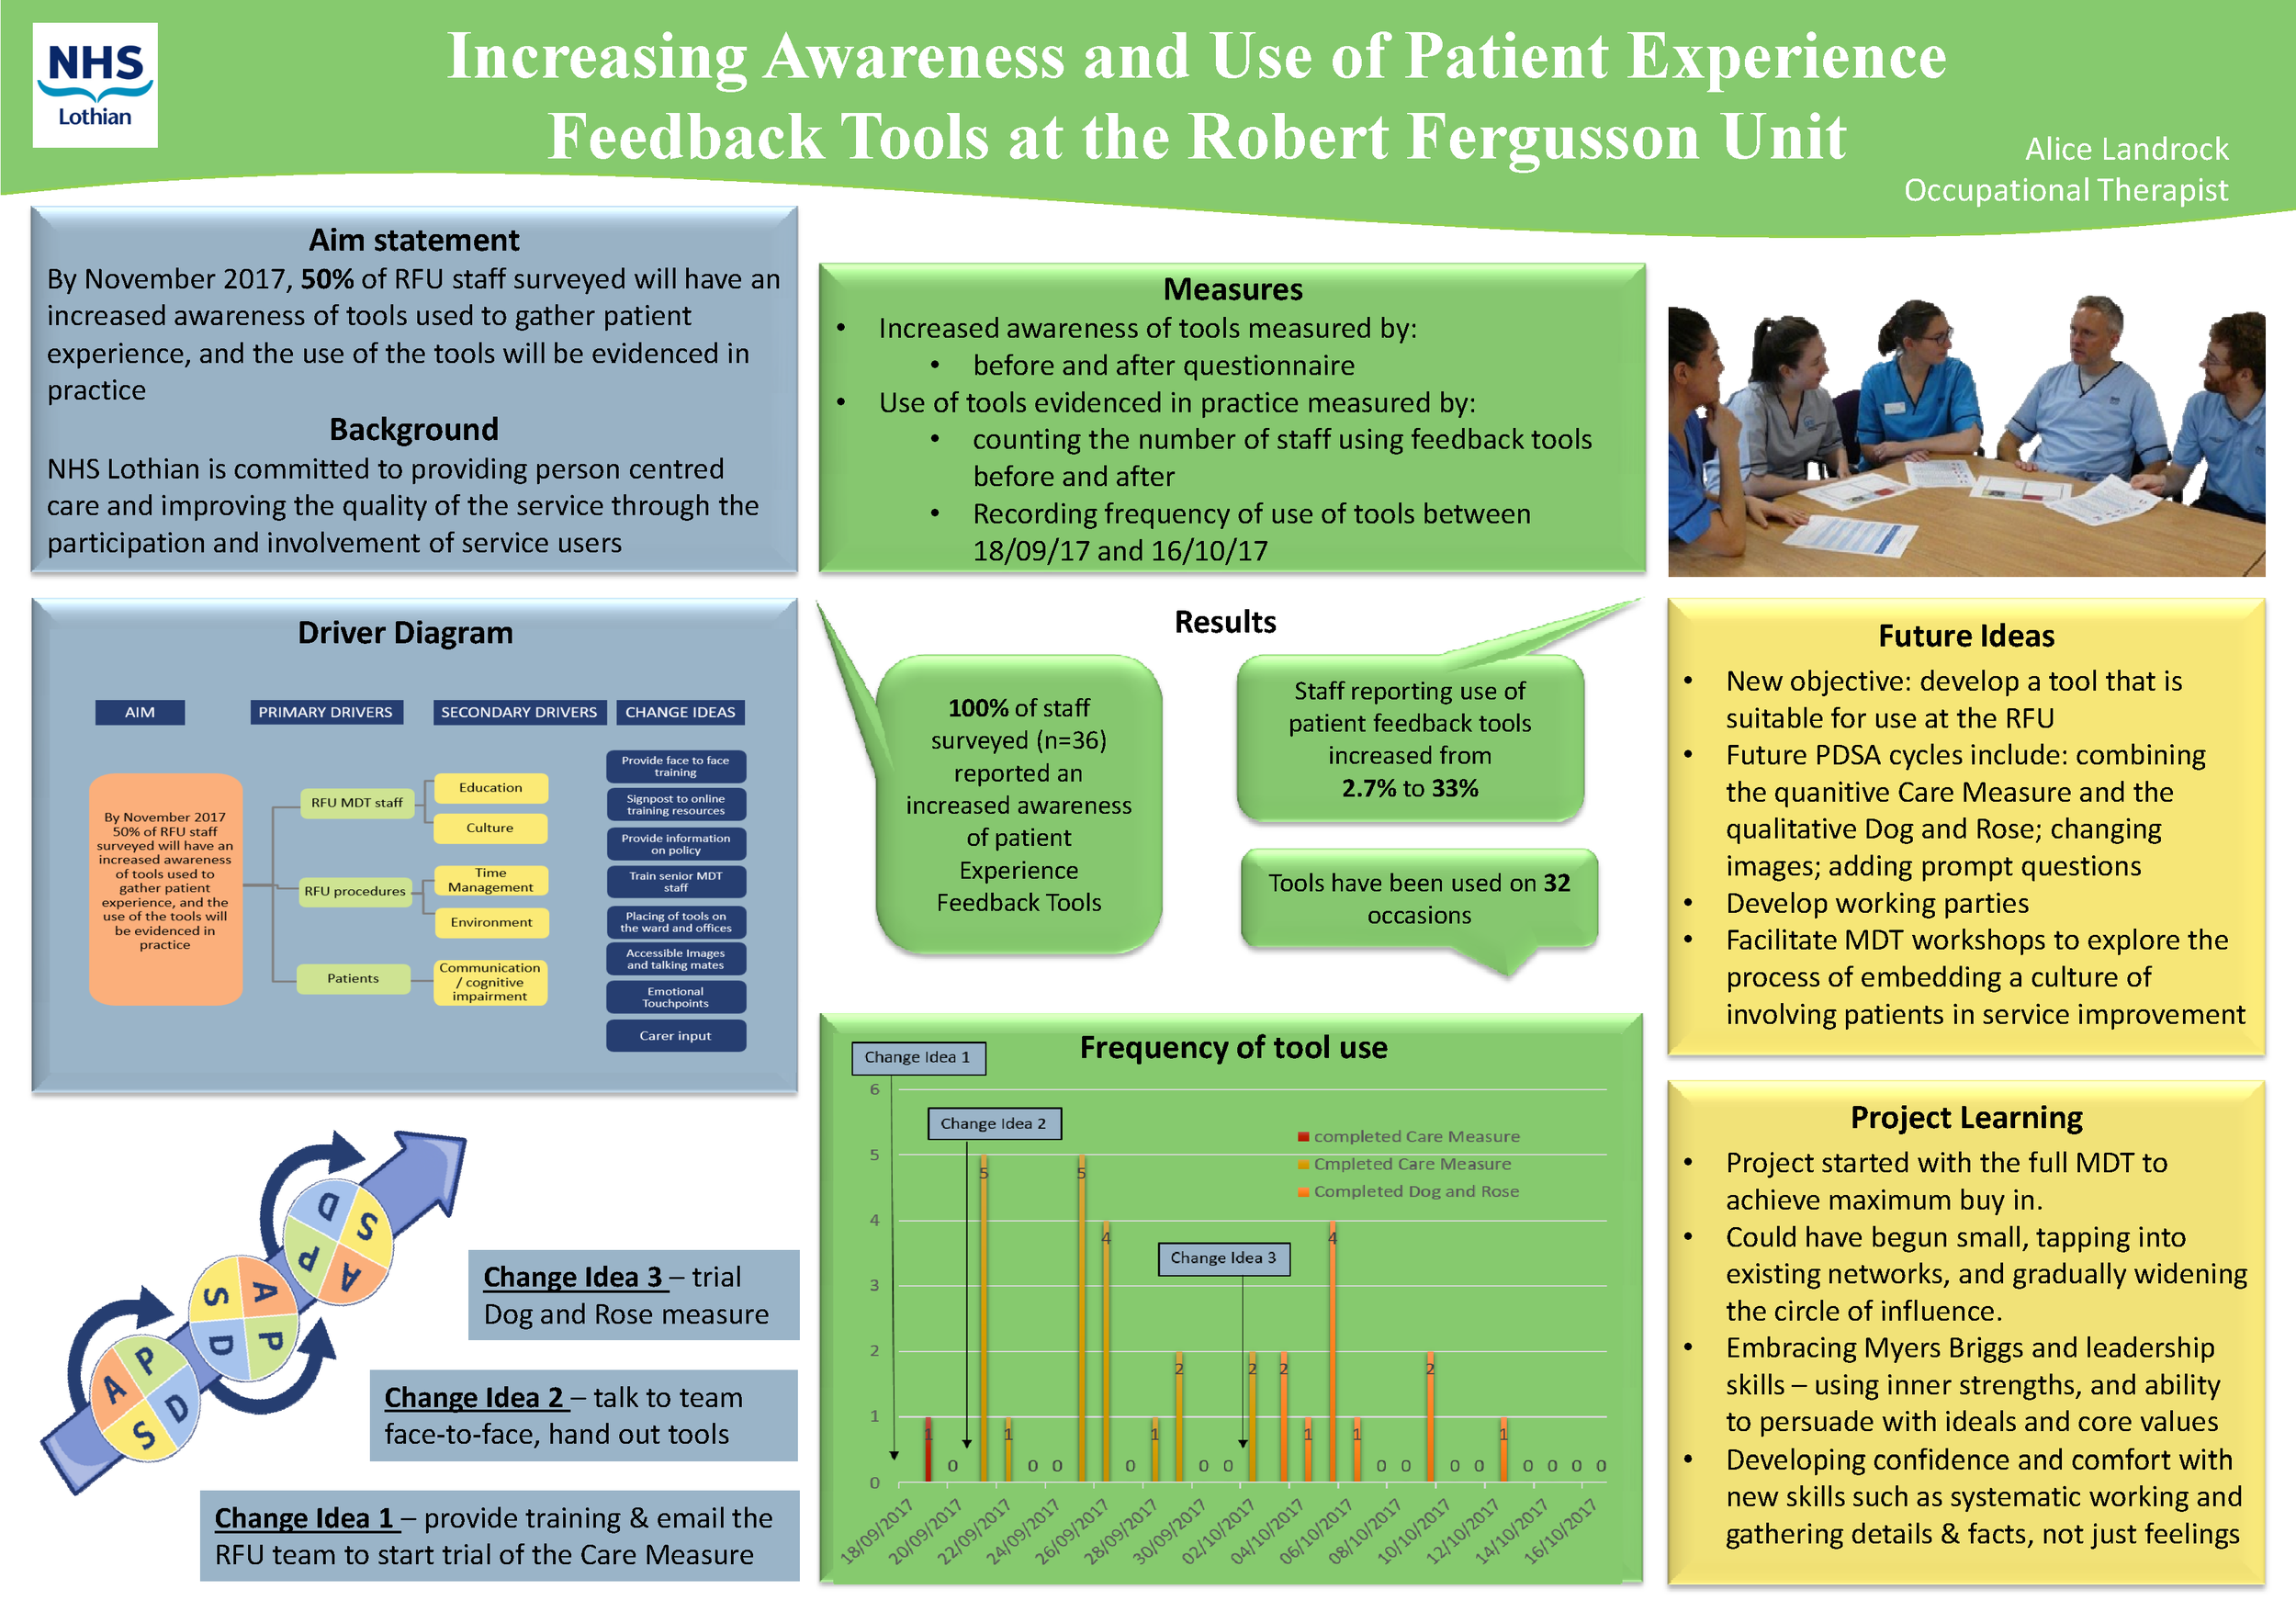 Increasing awareness and use of Patient Experience Feedback tools